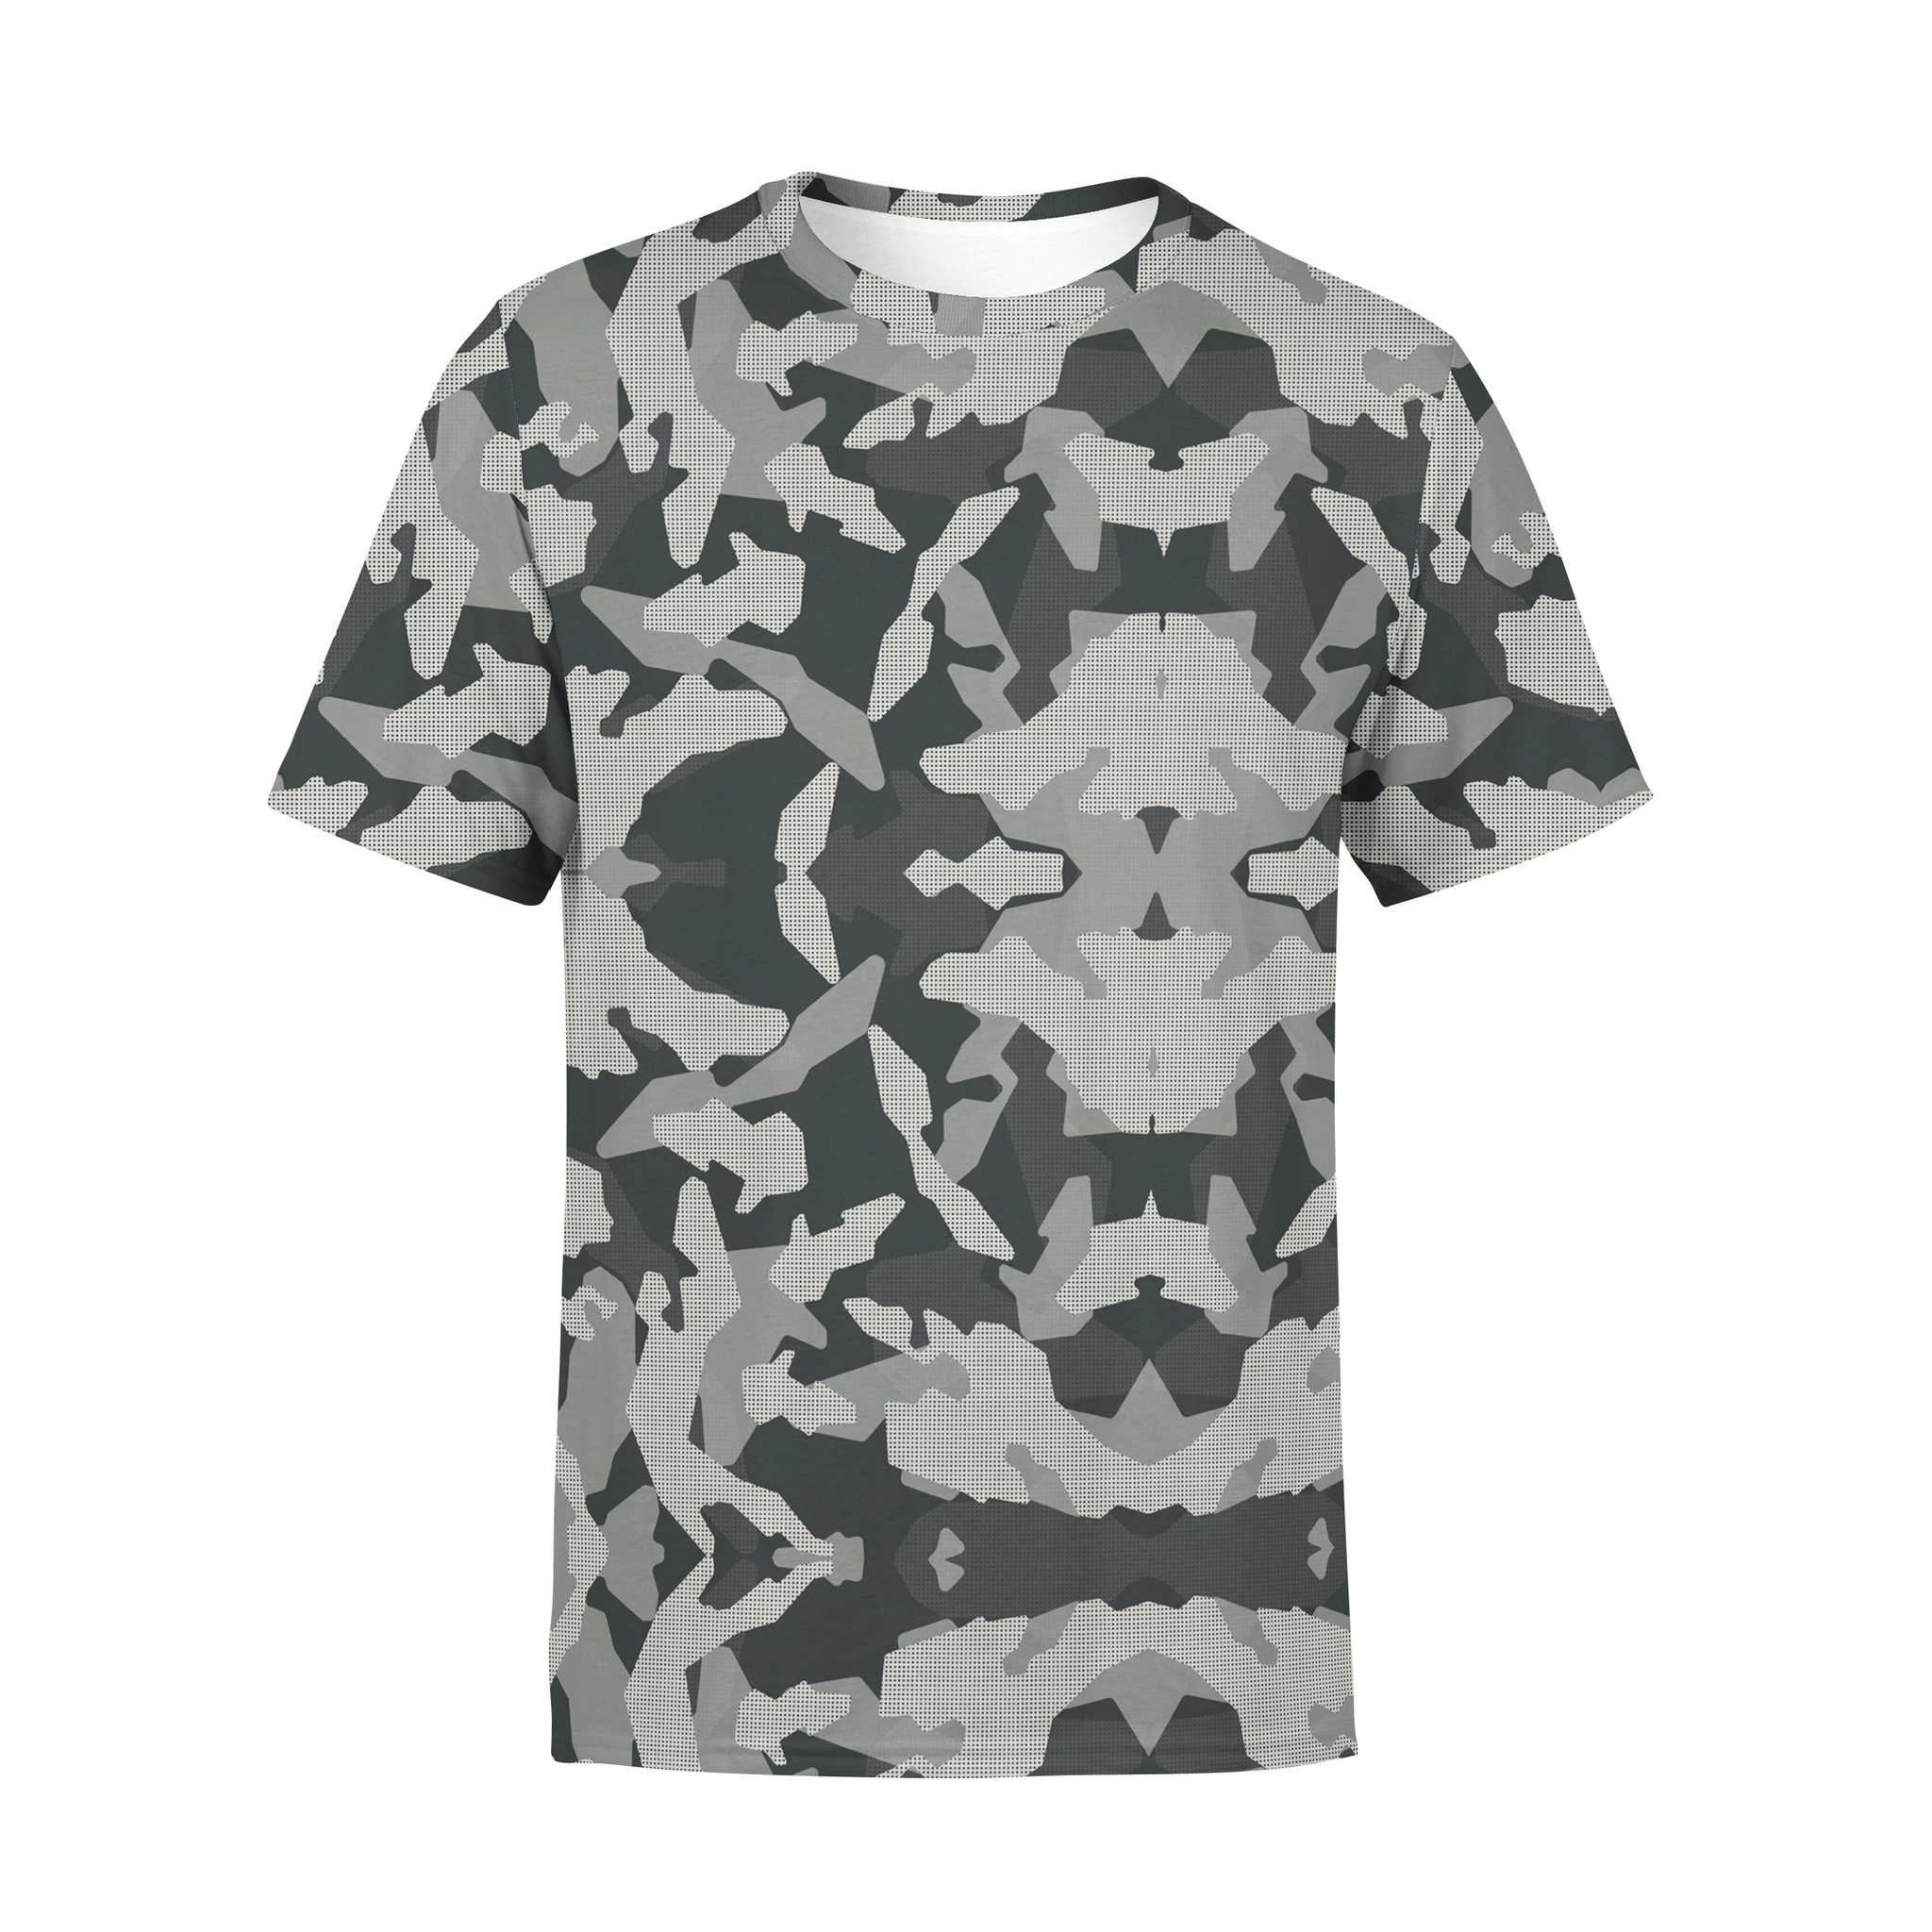 Men's Digital Grey Camo T-Shirt,S / Multicolored